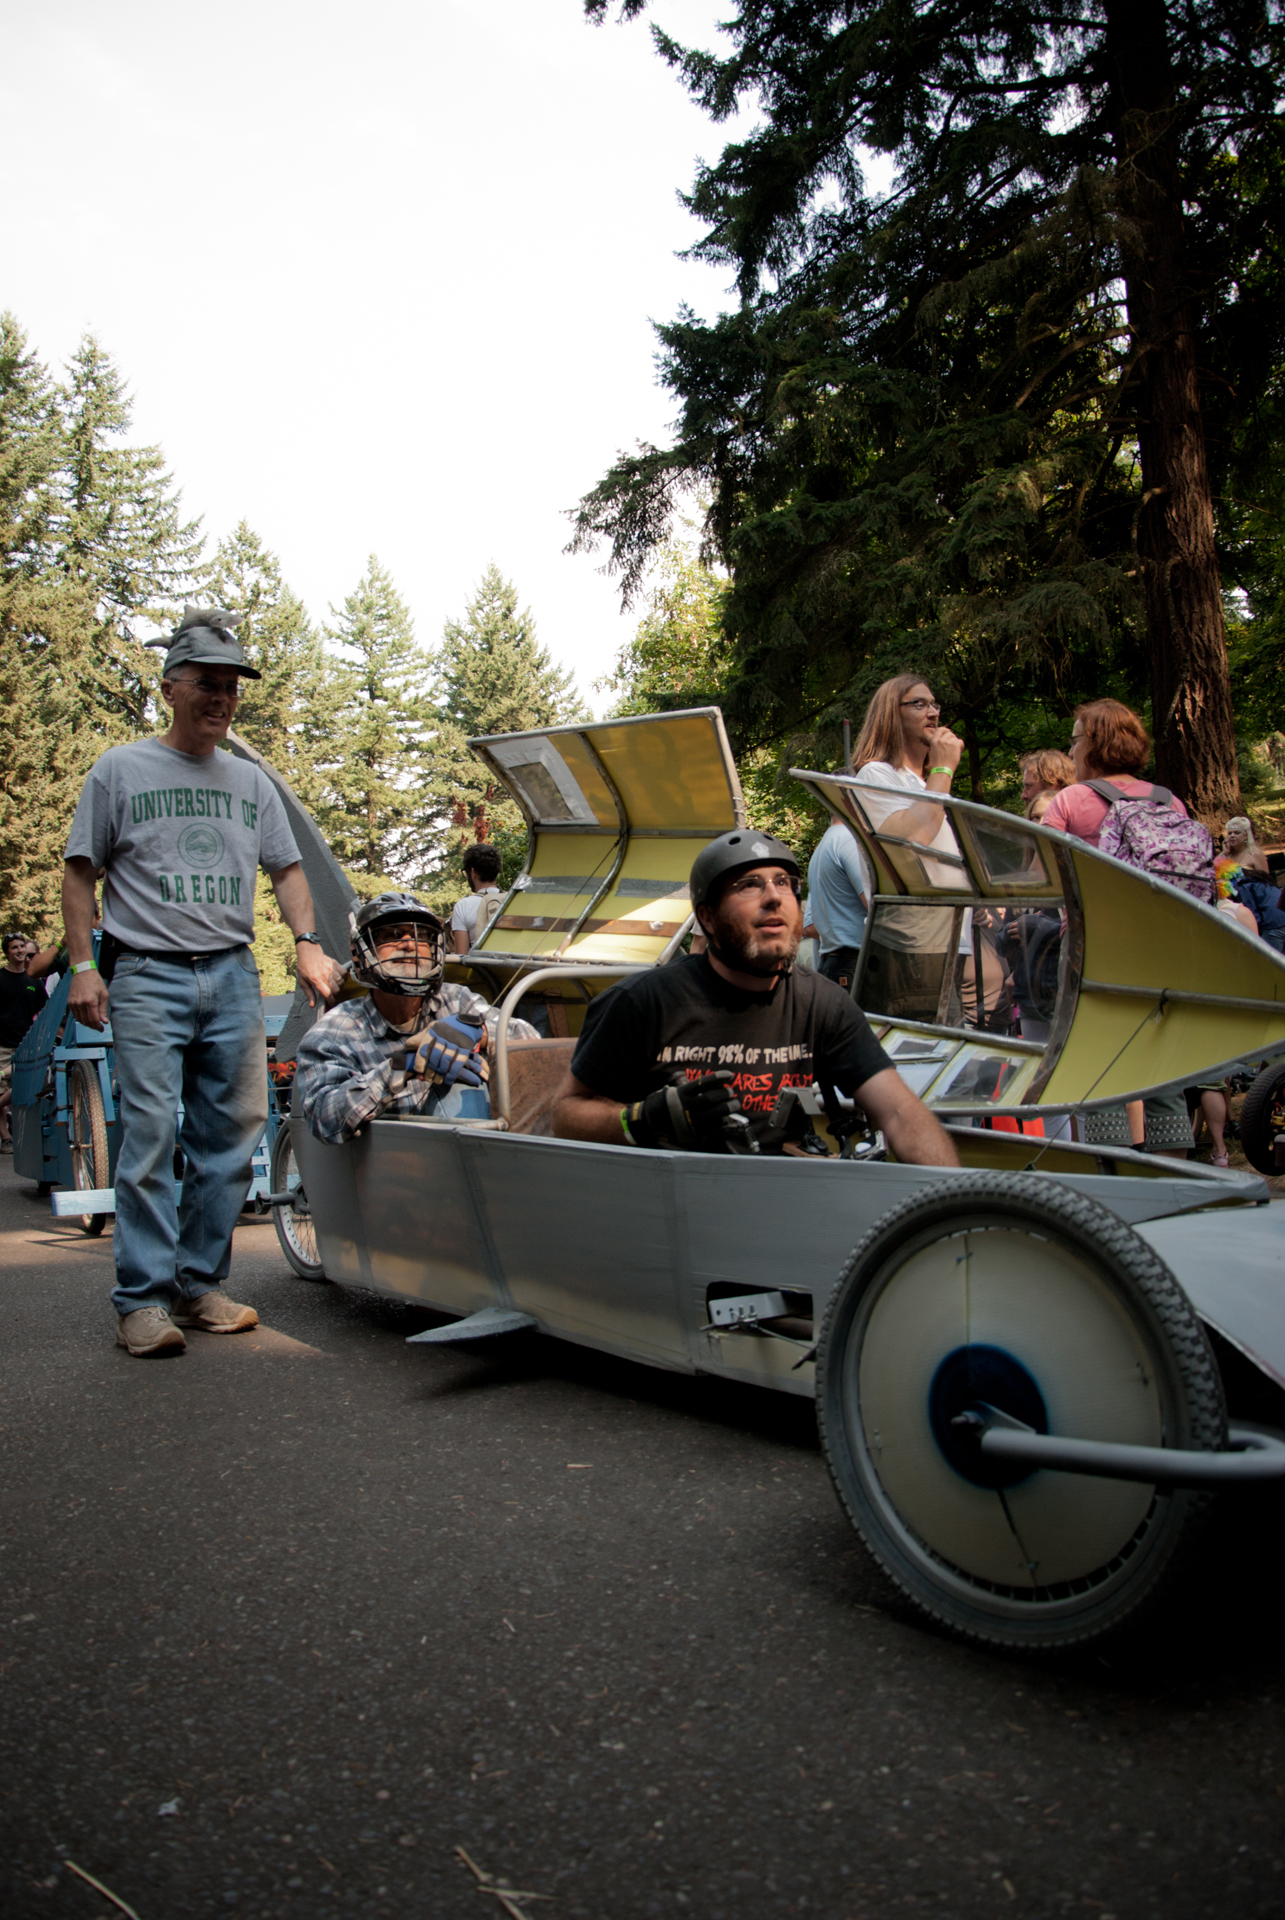 16th Pdx Adult Soapbox Derby 081812 additionally 16th Pdx Adult Soapbox Derby 081812 further Lauren Bacall 1924 2014 Dead At 89 besides Oscar Niemeyer 1907 2012 Dead At 104 also 16th Pdx Adult Soapbox Derby 081812. on oscar niemeyer 1907 2012 dead at 104